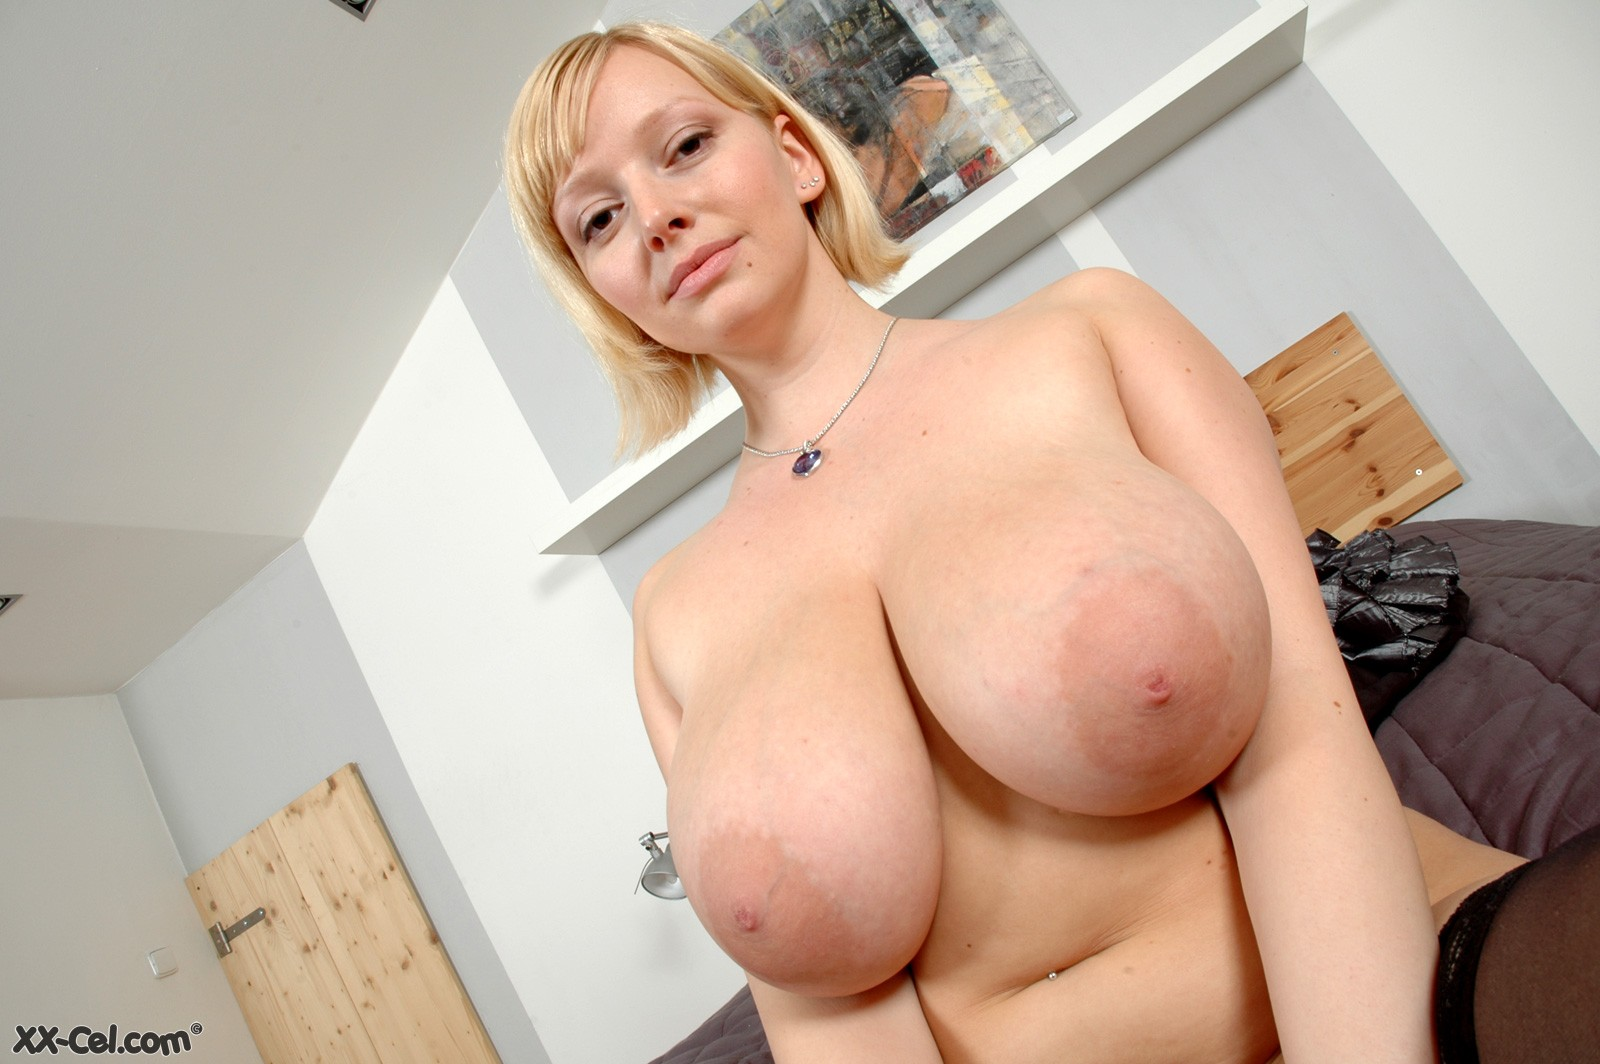 Free tight milf galleries